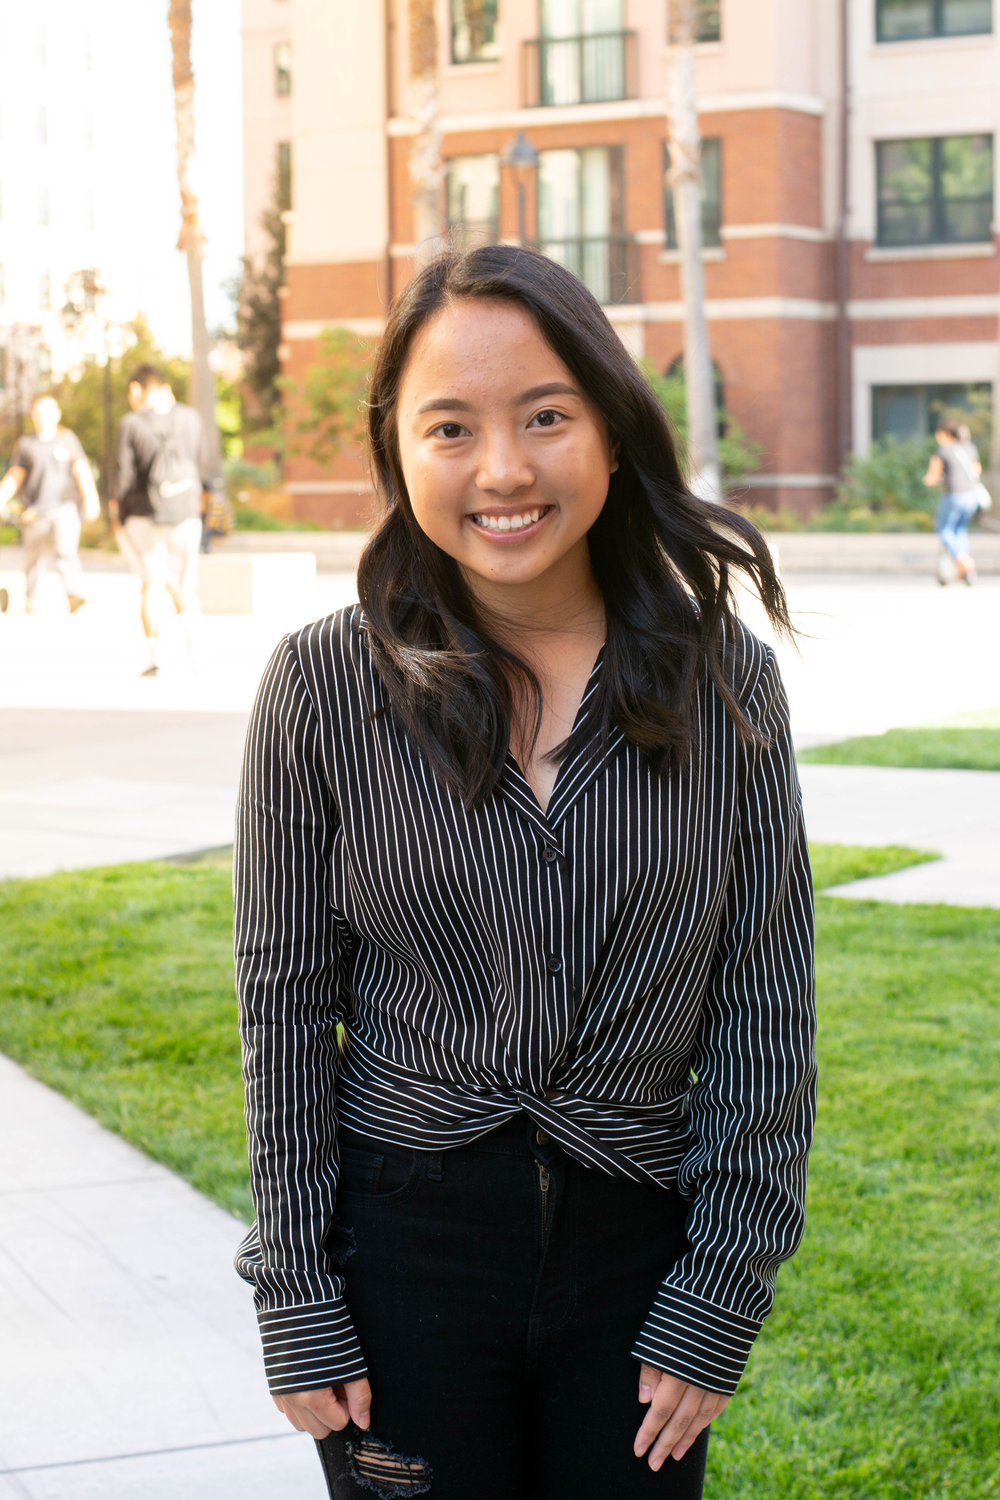 President - Brenda LeHi everyone! My name is Brenda Le, and I am currently serving as your 2018-2019 President of CV2. I was born in San Jose, California, but I grew up in Tracy and attended John C. Kimball High School. I am Vietnamese, and am majoring in Business Administration with a concentration in Management. I enjoy taking naps, watching Netflix, and listening to music in my free time. Some of my favorite artists include Khalid, Rex Orange County, Daniel Caesar, and many more. I have a strong passion for leadership, and I can't wait to serve you all this year as your CV2 President!